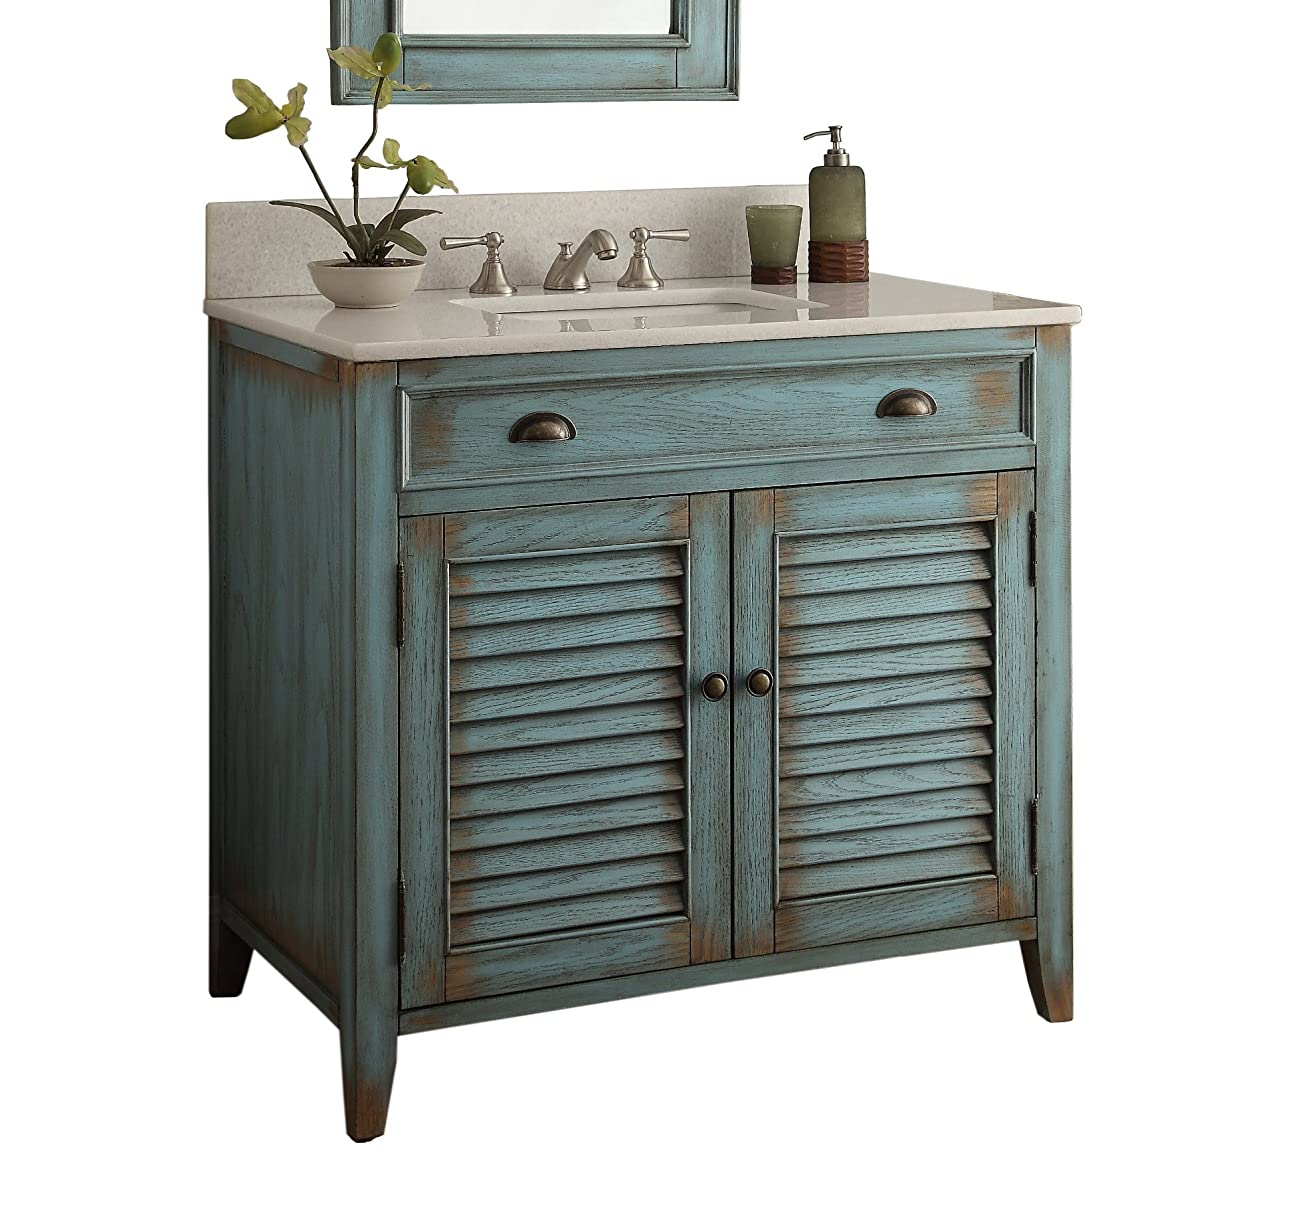 "36"" Cottage look Abbeville Bathroom Sink Vanity Cabinet - Model # CF28884BU 1"